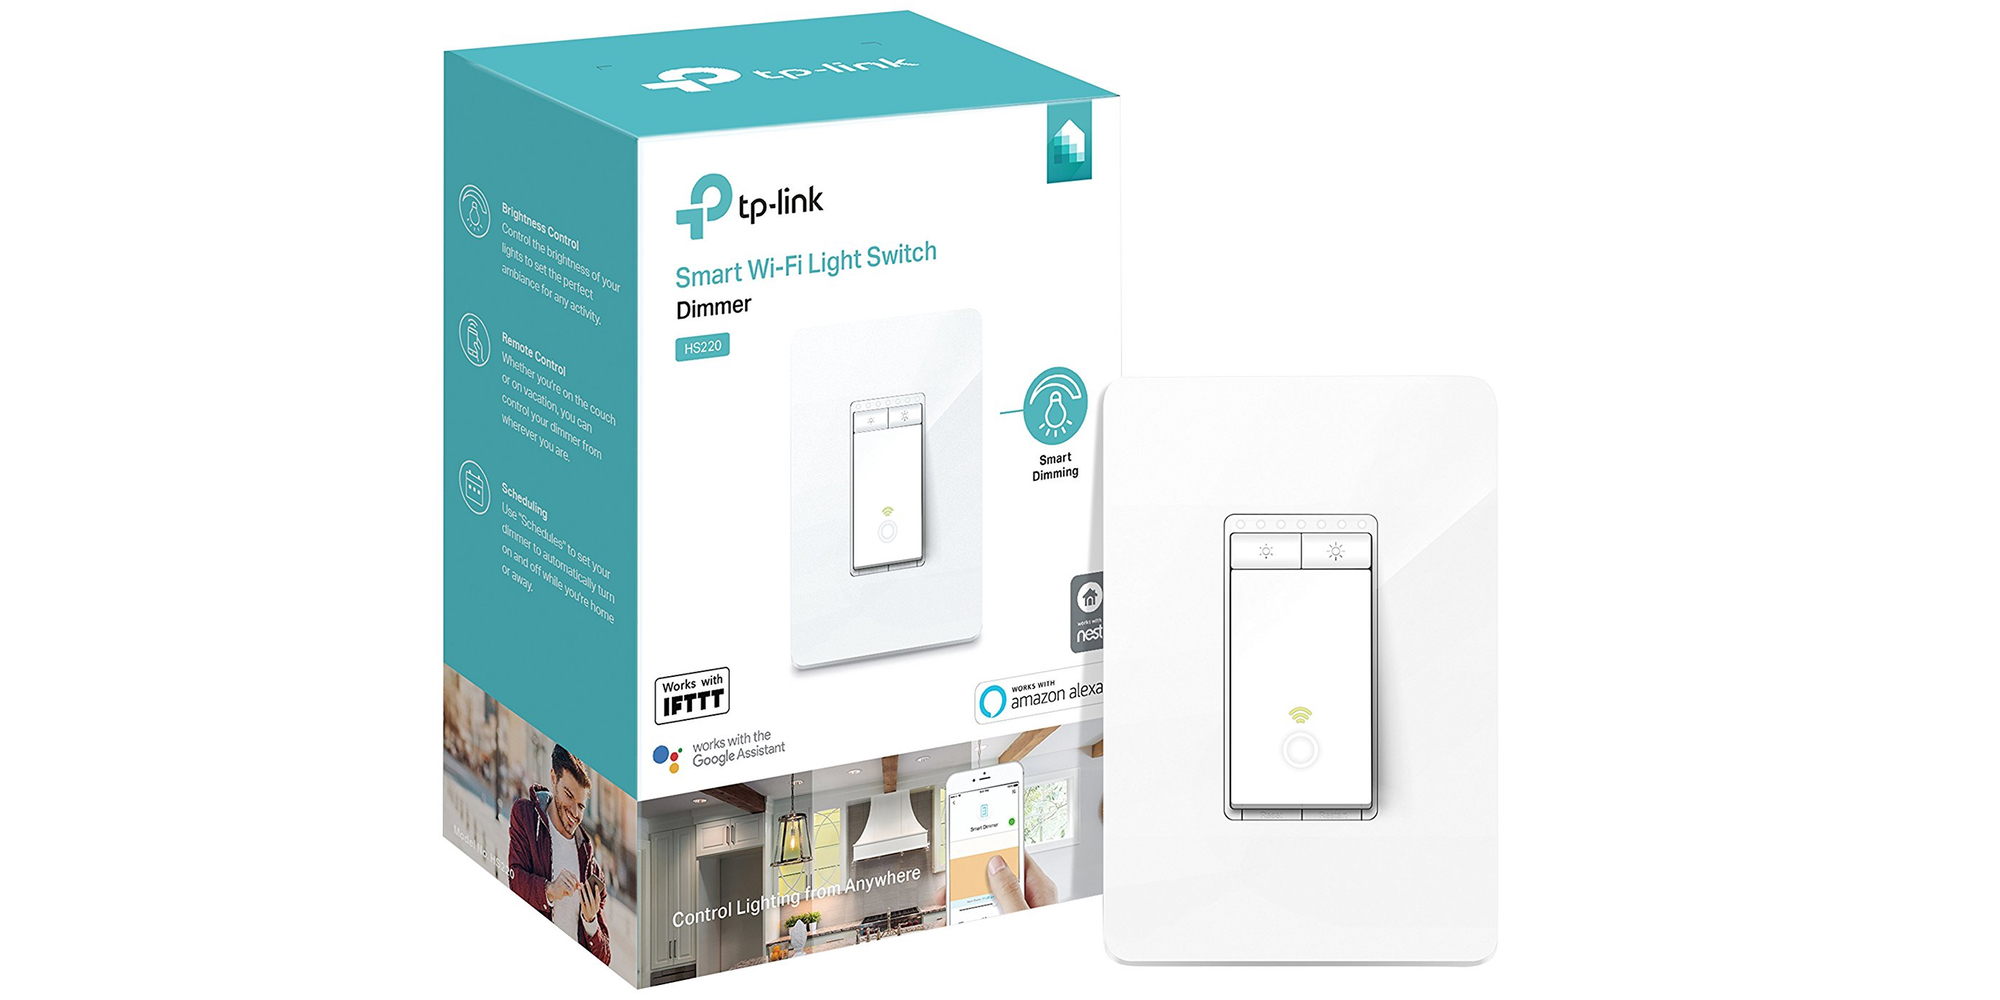 Score a two-pack of TP-Link Alexa and Assistant-enabled Light Switches for $60 (30% off)